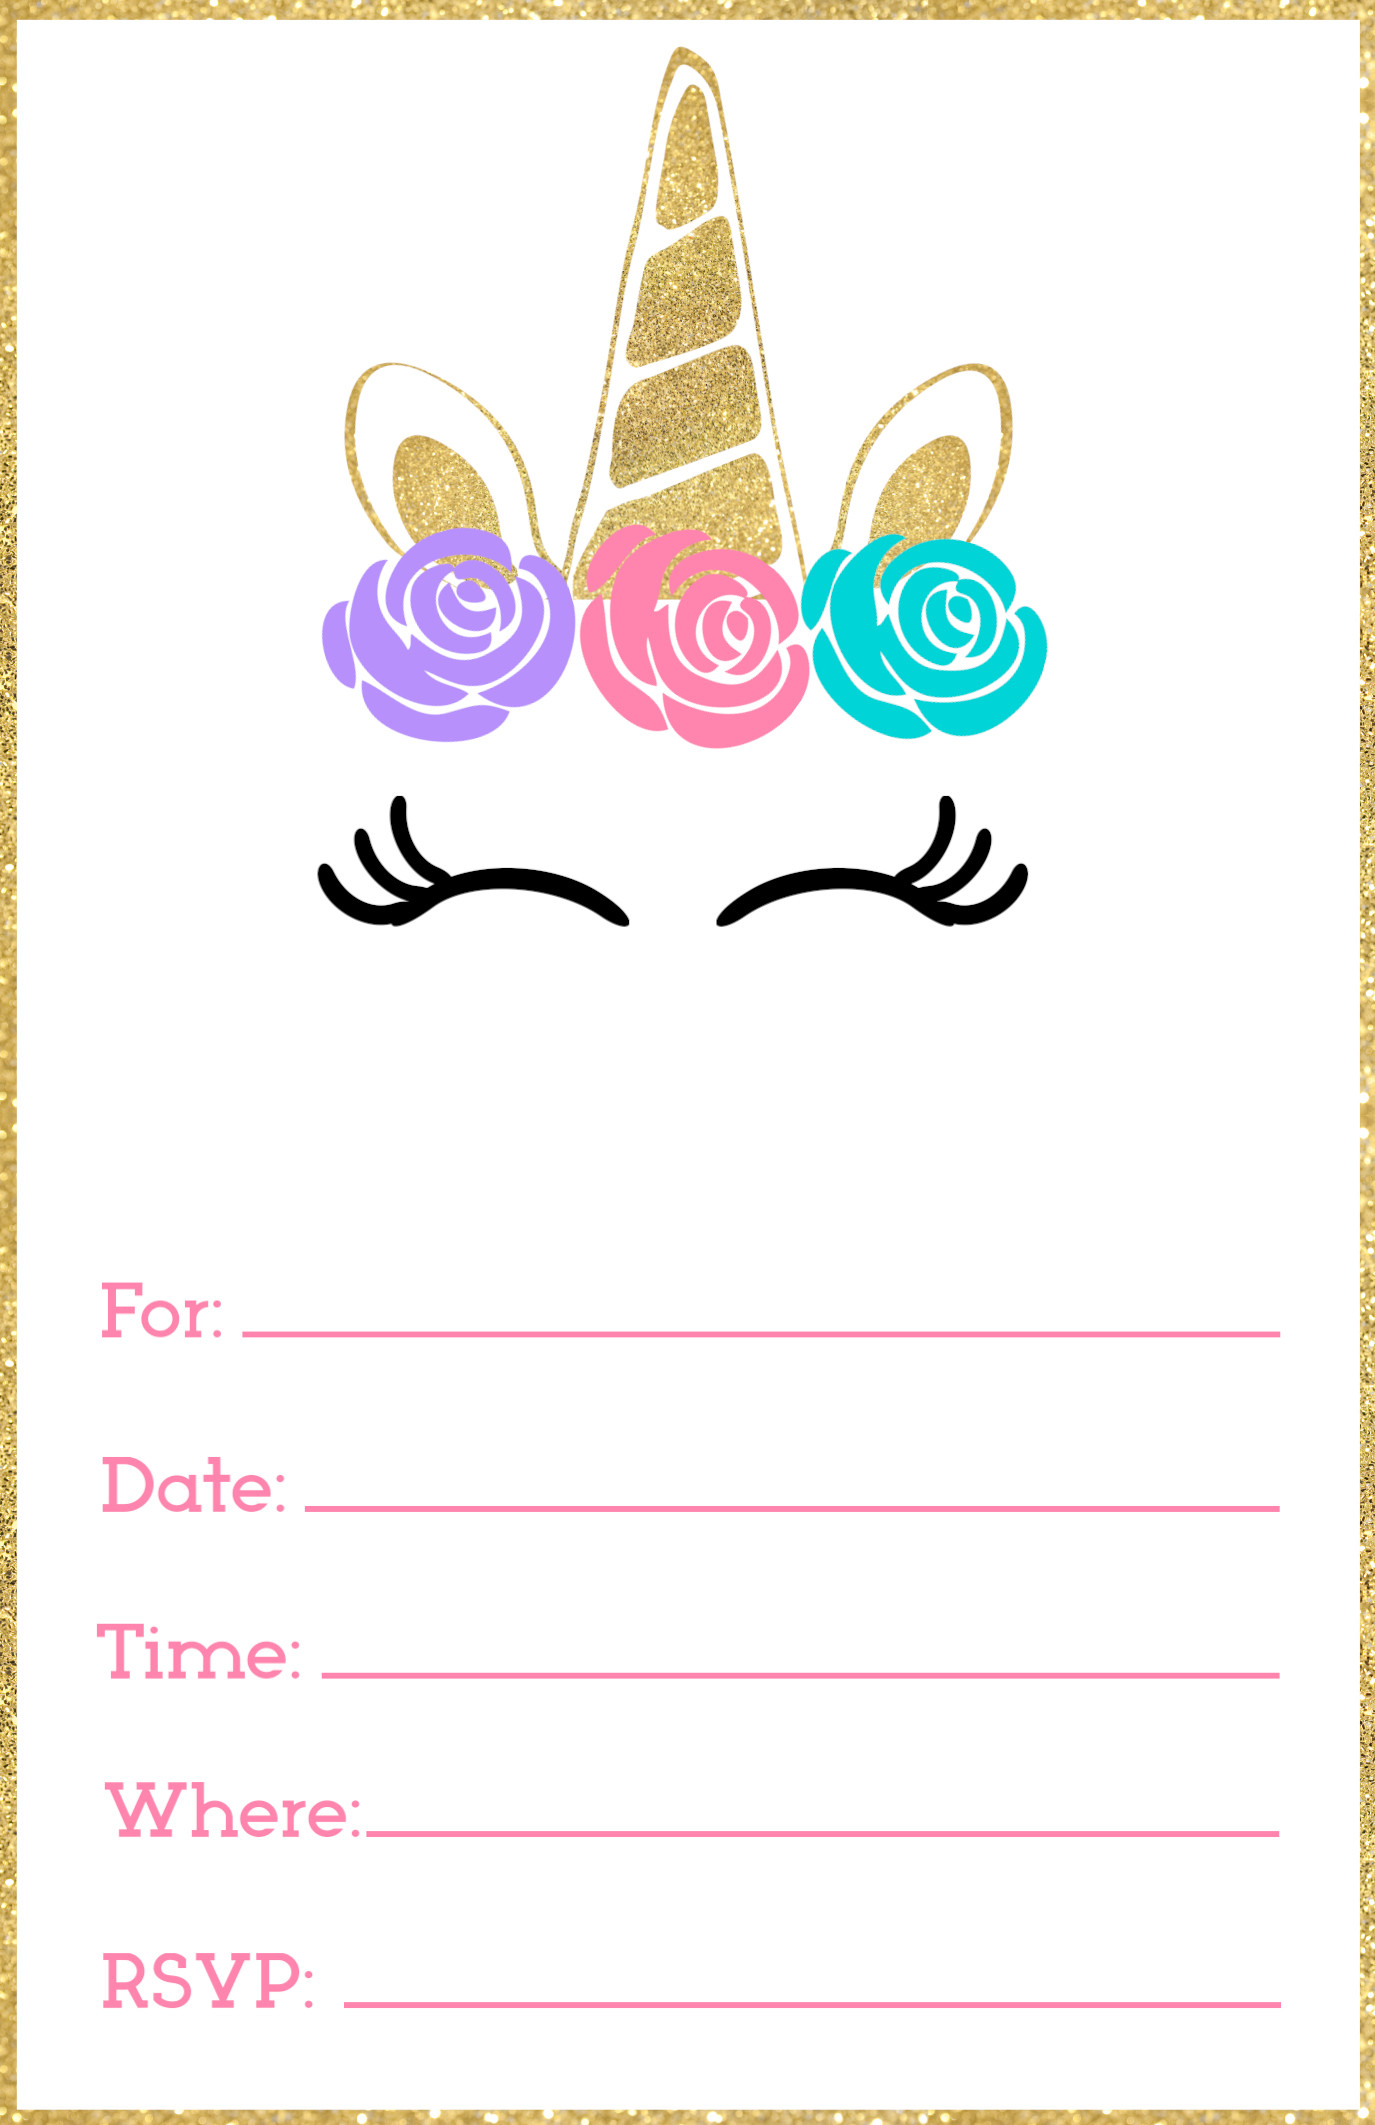 Best ideas about Free Printable Unicorn Birthday Invitations . Save or Pin Free Printable Unicorn Invitations Template Paper Trail Now.